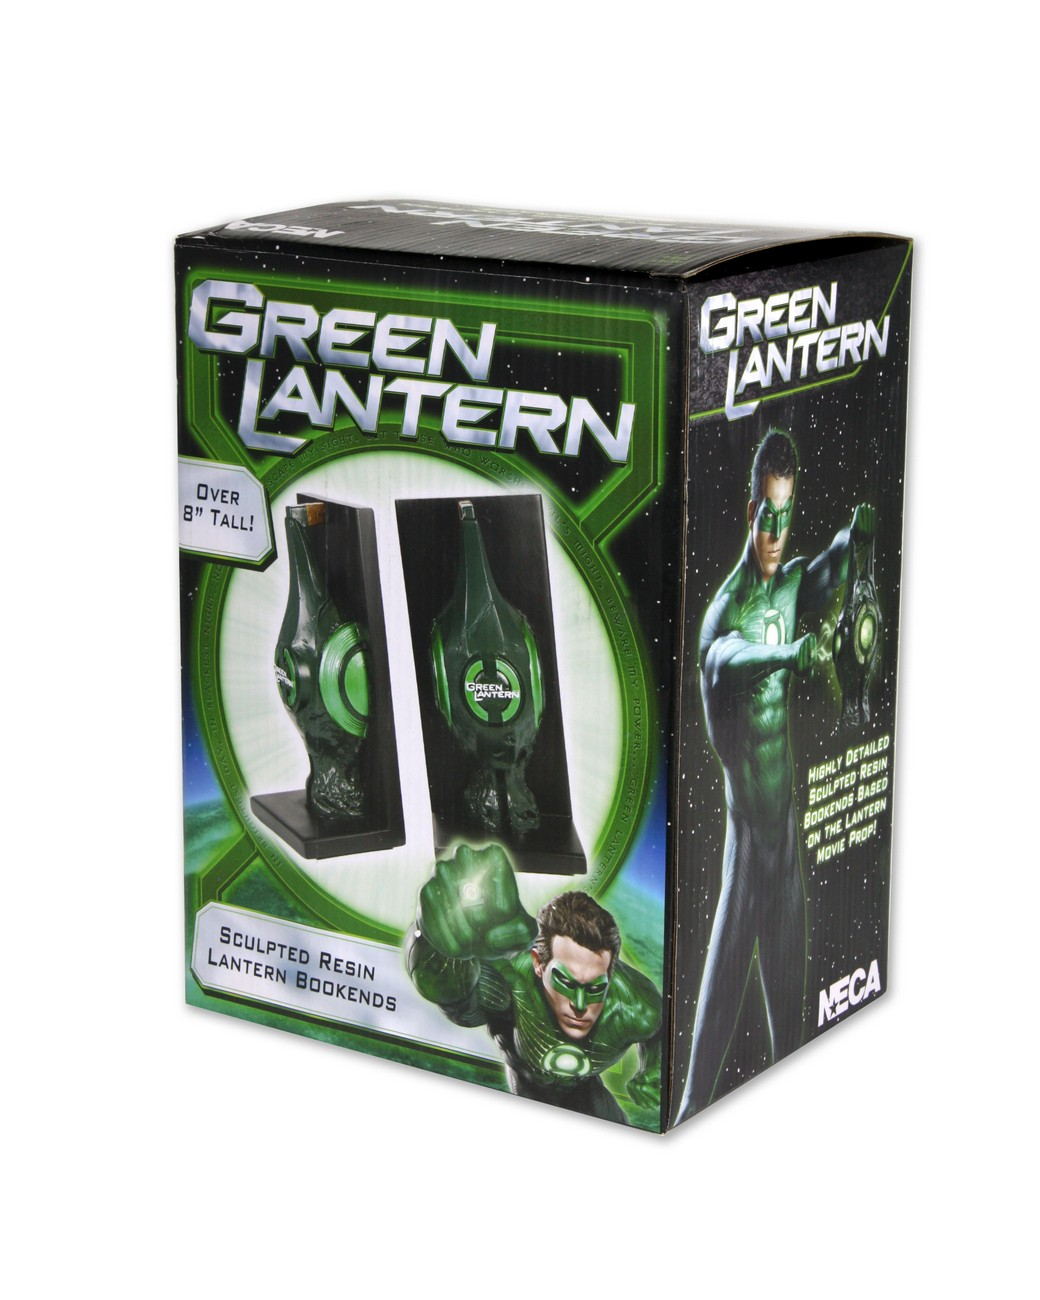 Green Lantern Movie Sculpted Bookends Lantern | NECAOnline.com